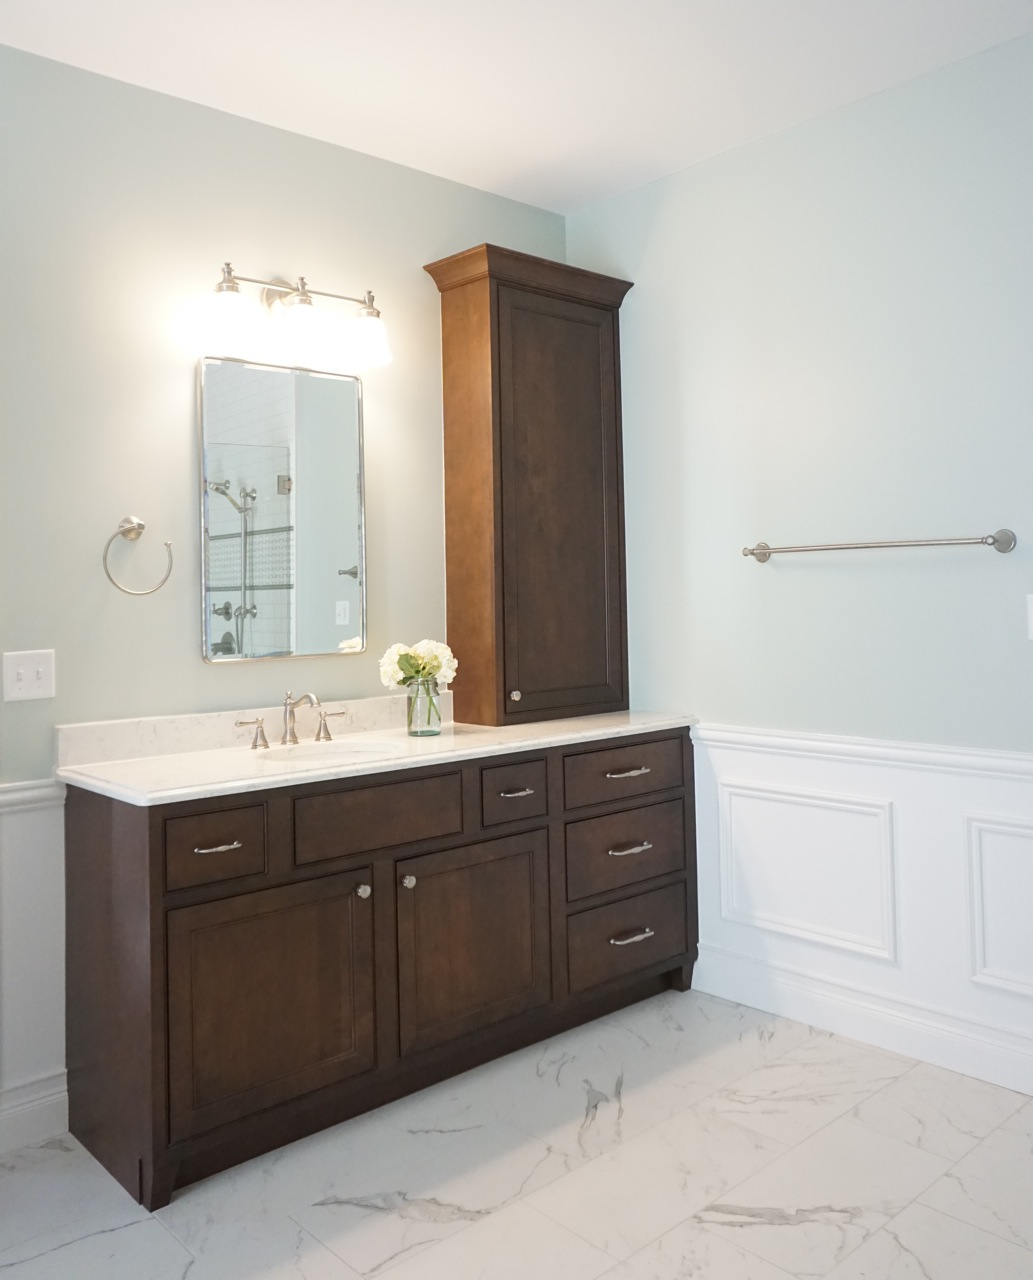 Town Country Bathroom Remodel Affordable Kitchens And Baths